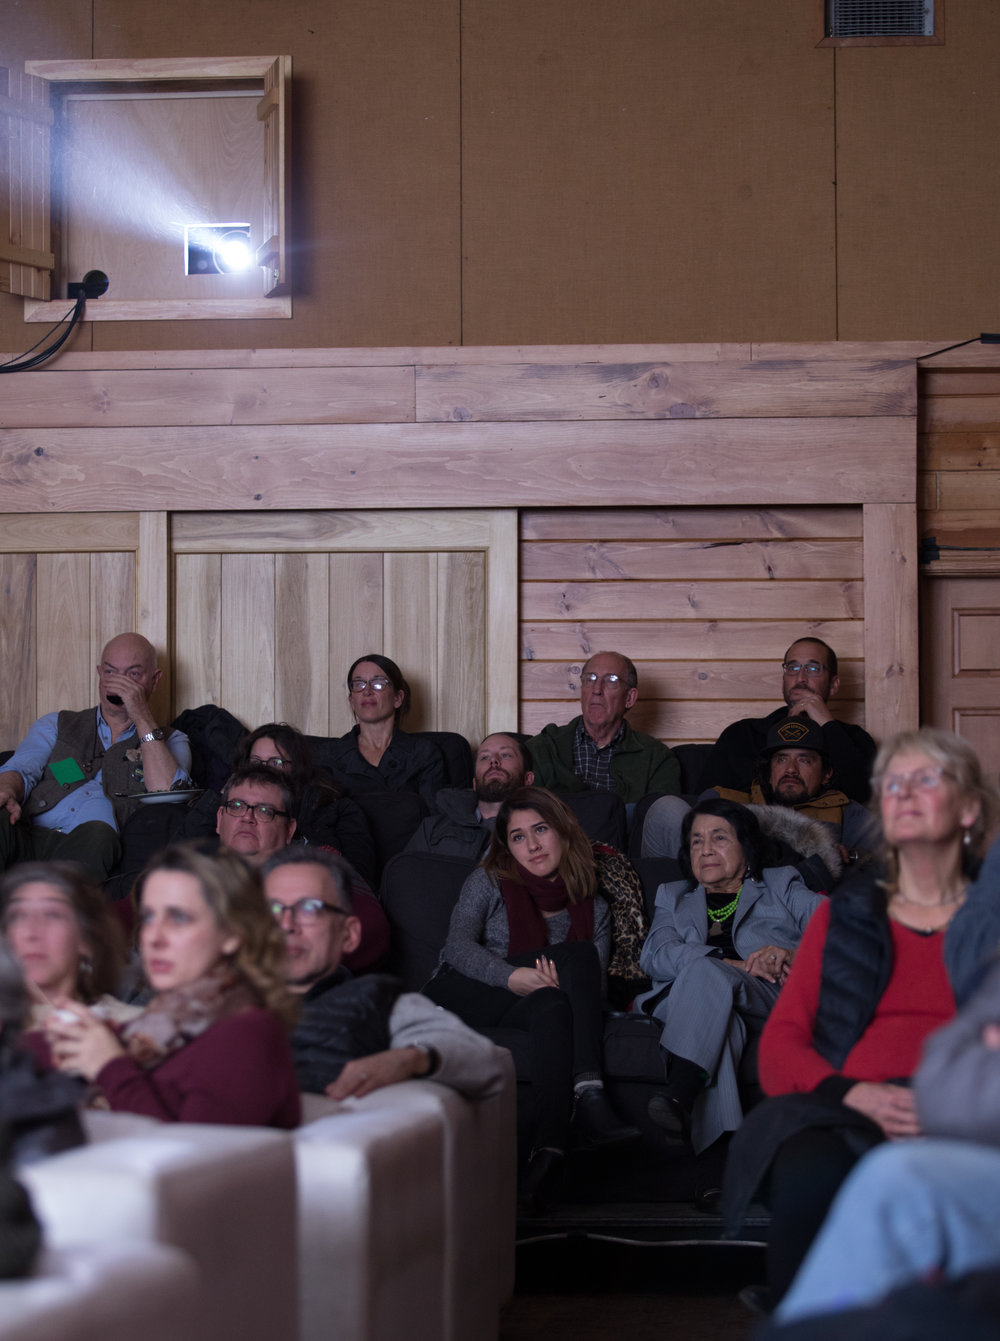 13. Audience Joshua Robinson-White 6H0A0130Dolores copy.jpg